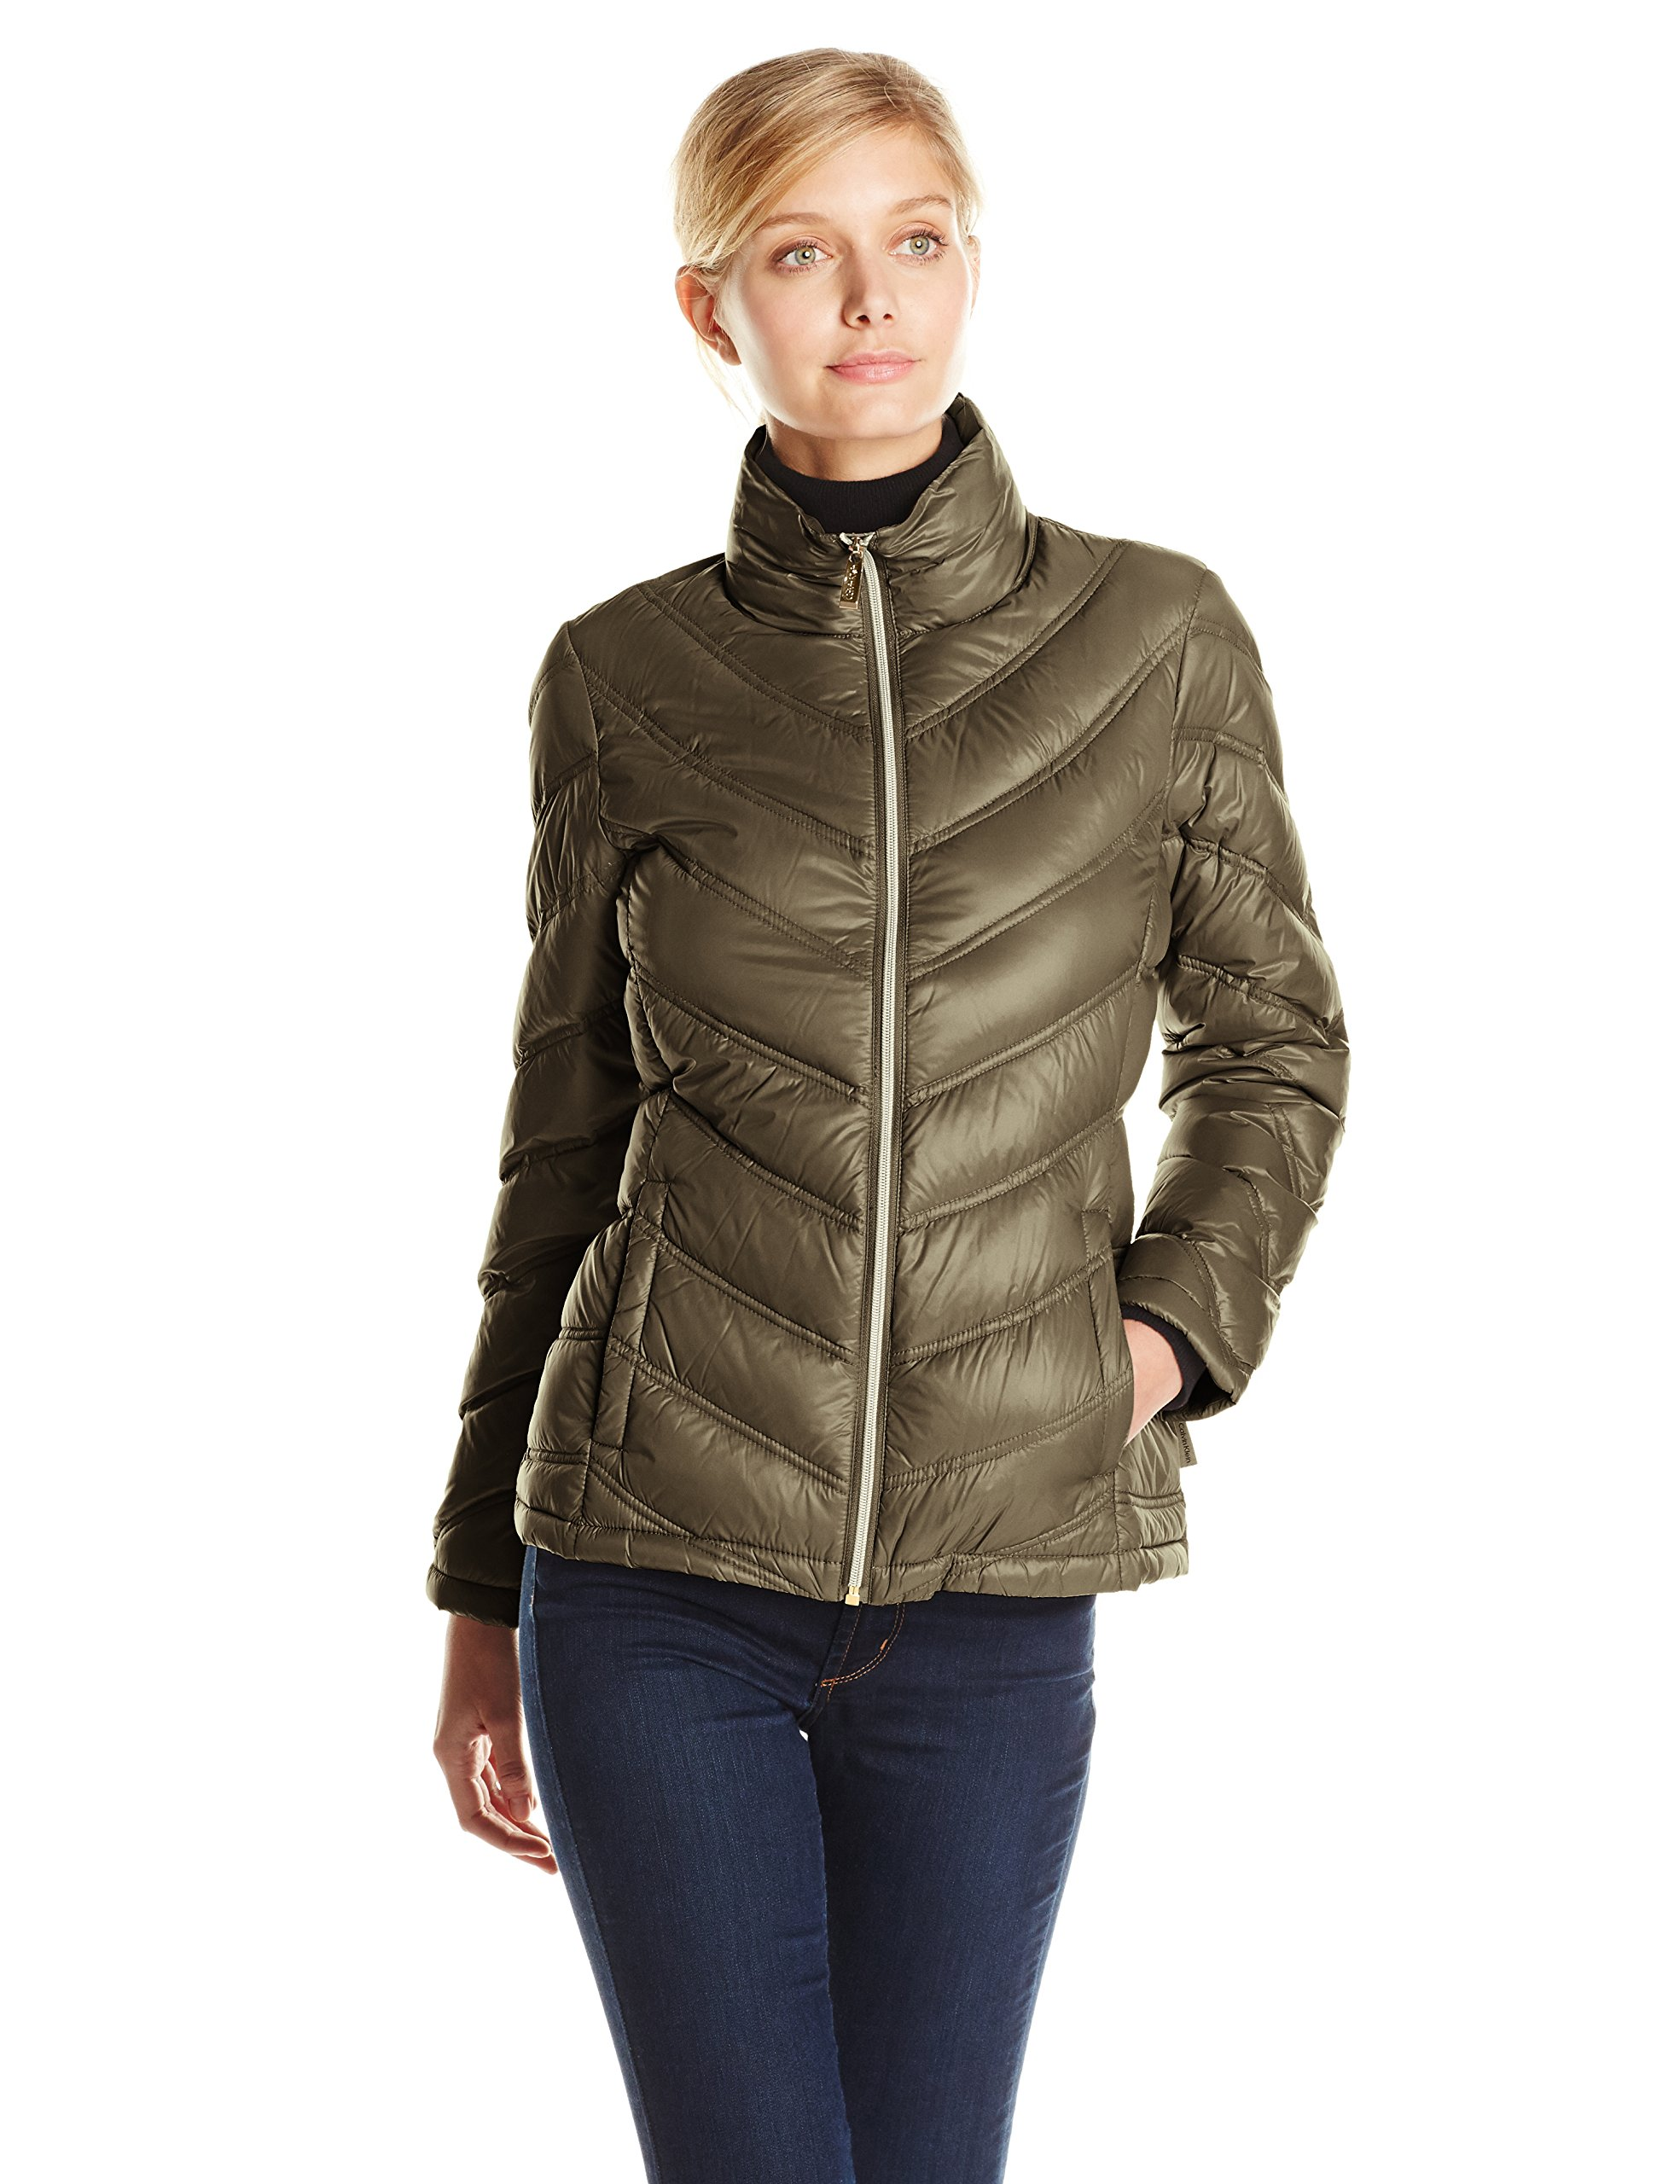 Calvin Klein Women's Lightweight Chevron Packable Jacket, Loden, X-Large by Calvin Klein